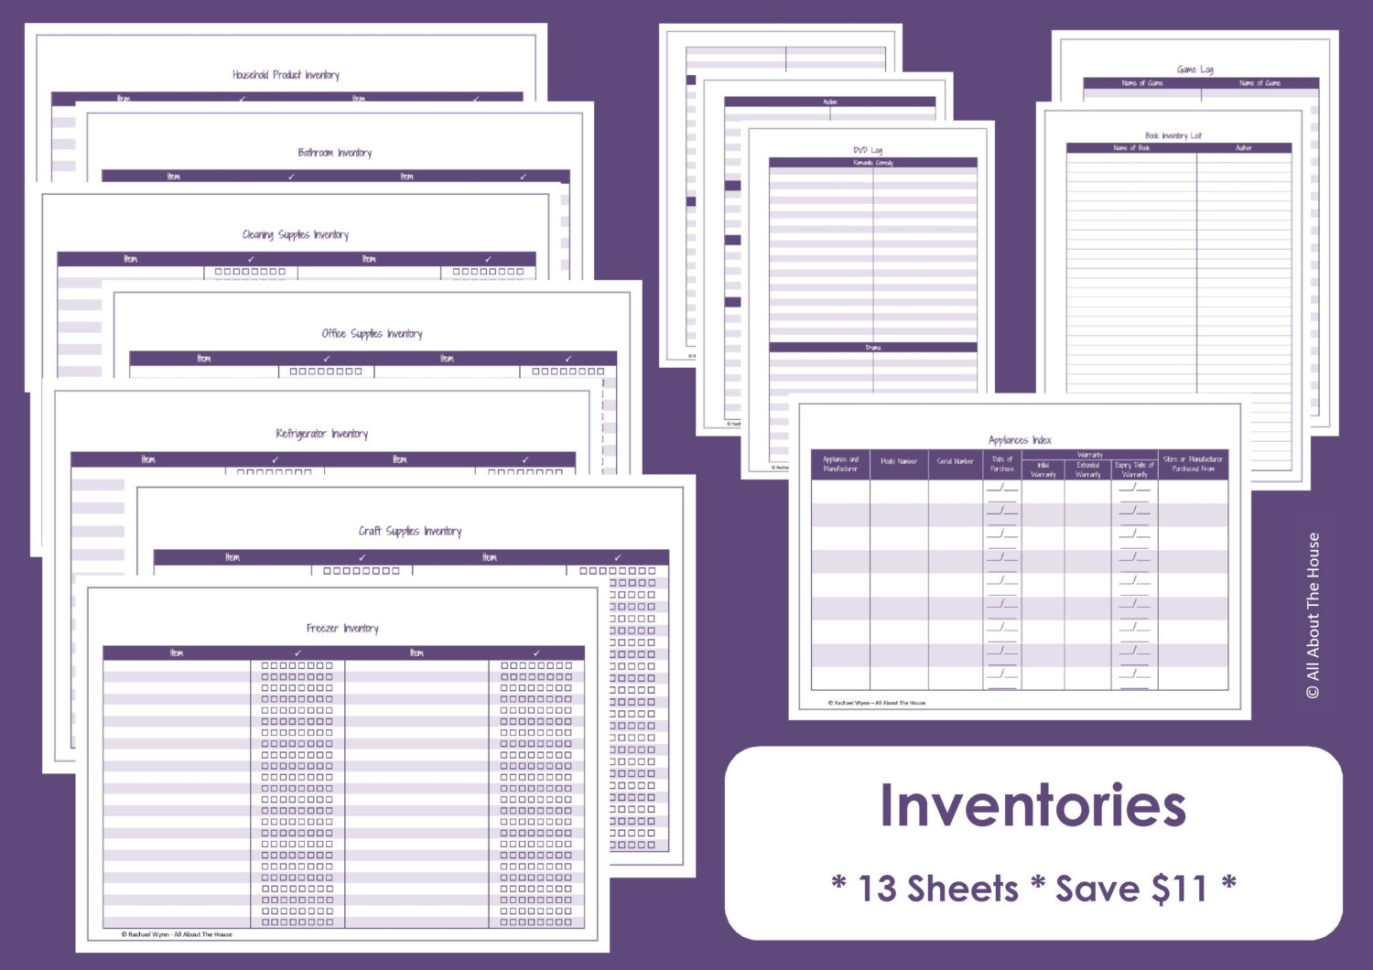 Up Home Inventory Spreadsheet With Regard To Home Inventory Spreadsheet Template For Excel With Free Plus